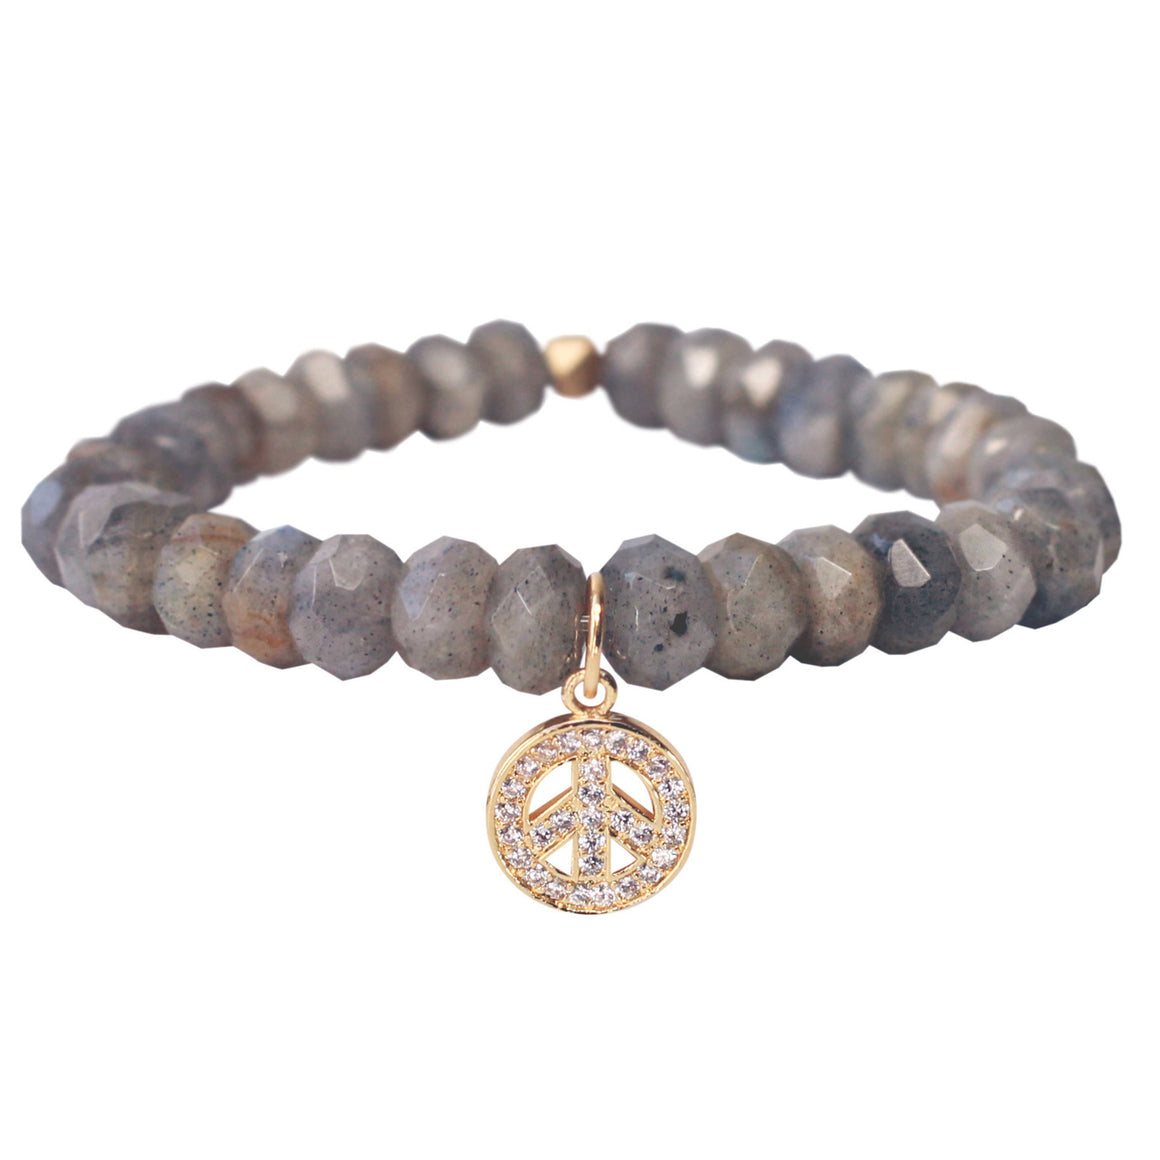 The Inner Peace Charm in Gold